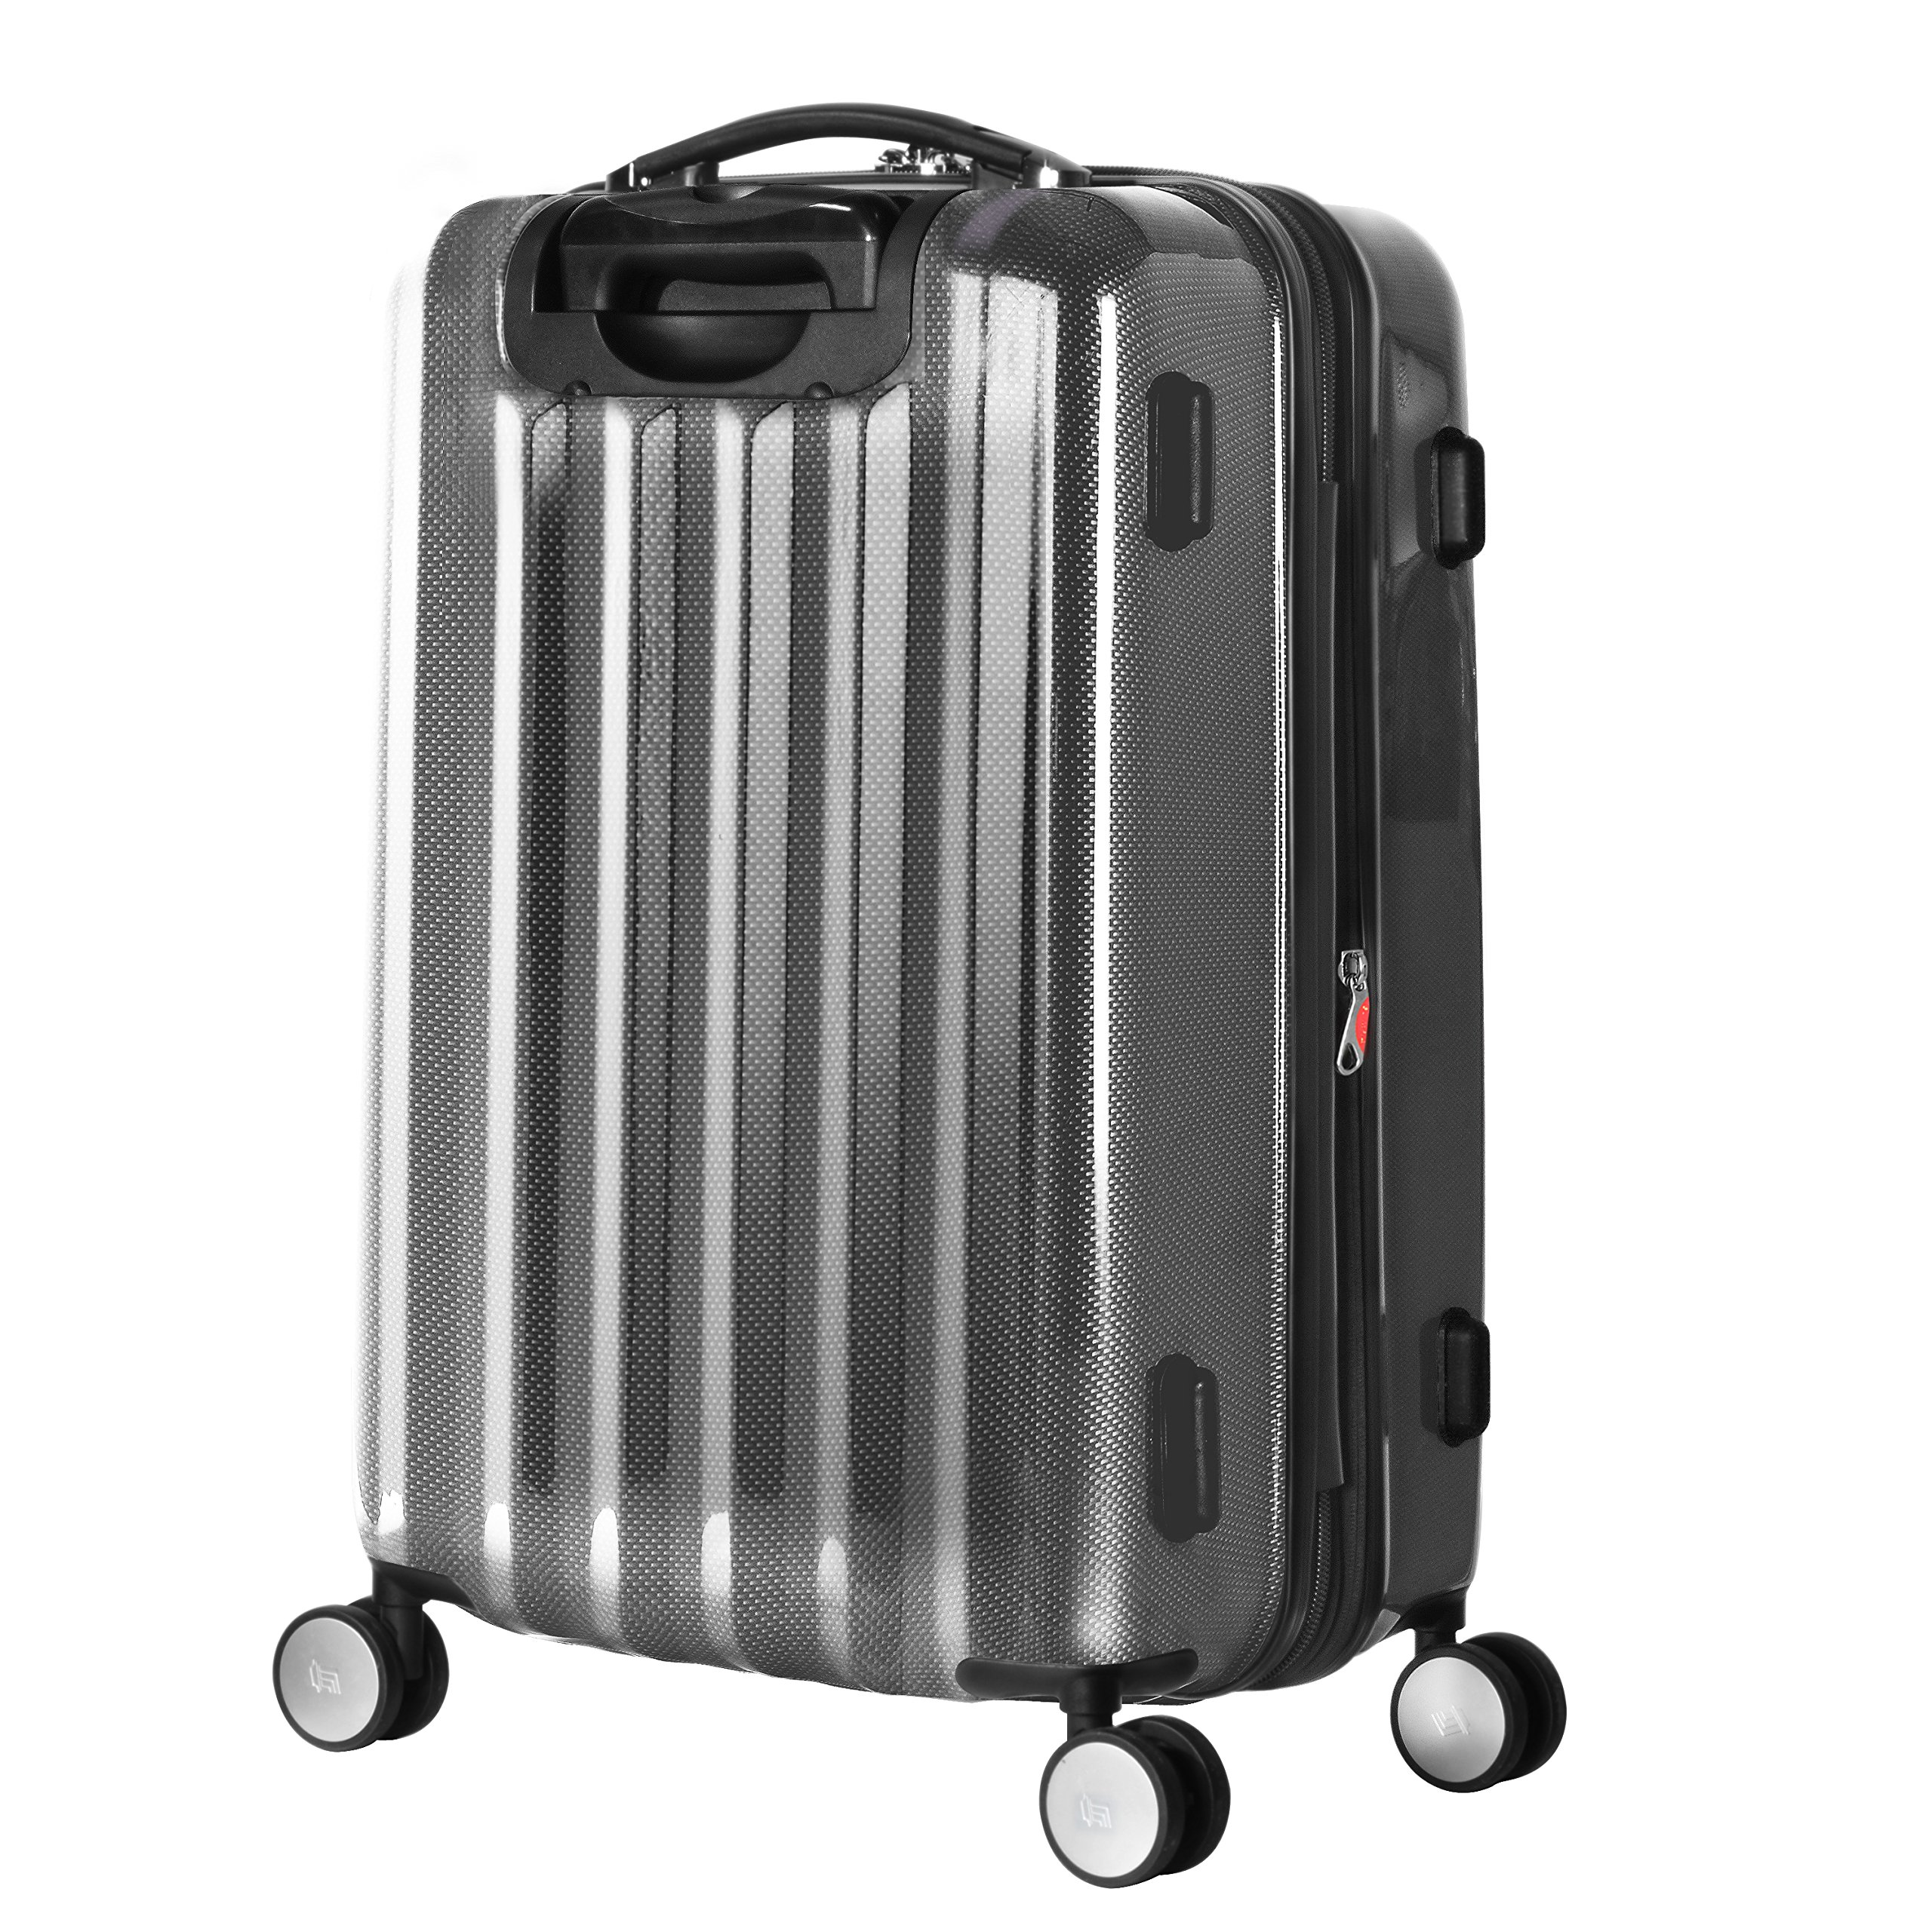 Olympia Luggage Titan 21 Inch Expandable Carry-On Hardside Spinner, Black, One Size by Olympia (Image #6)